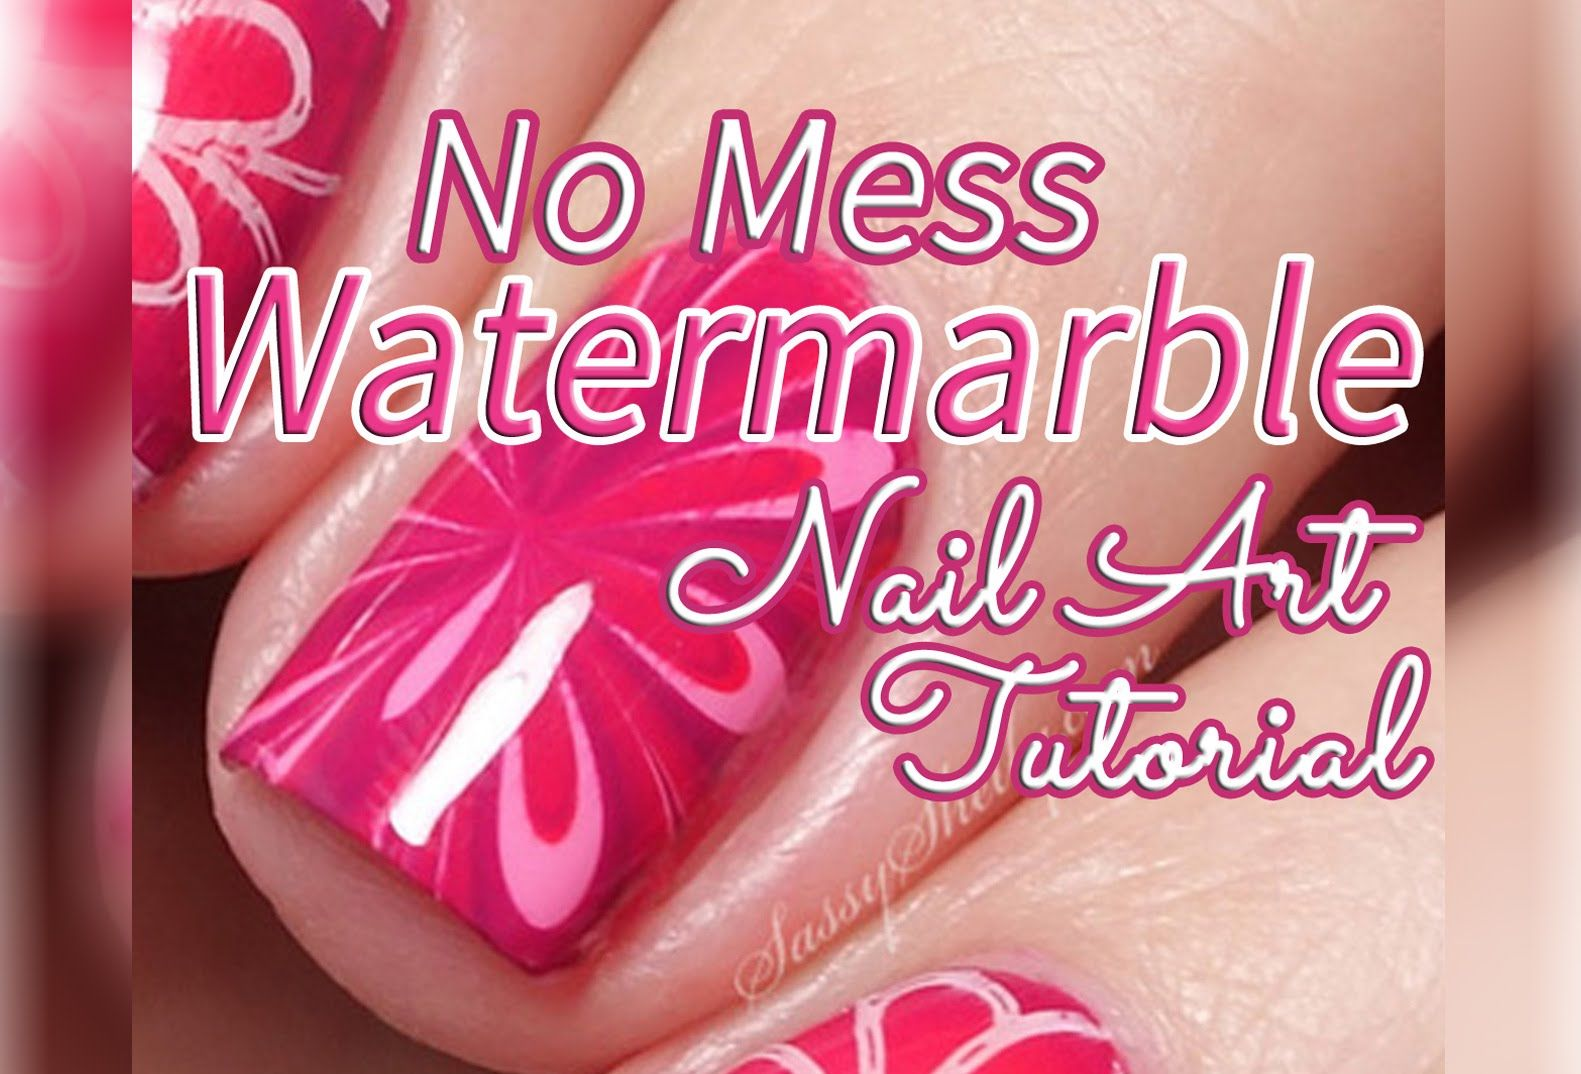 NO MESS WATERMARBLE! ~ Easy Decal Nail Art Tutorial | YouTube video ...